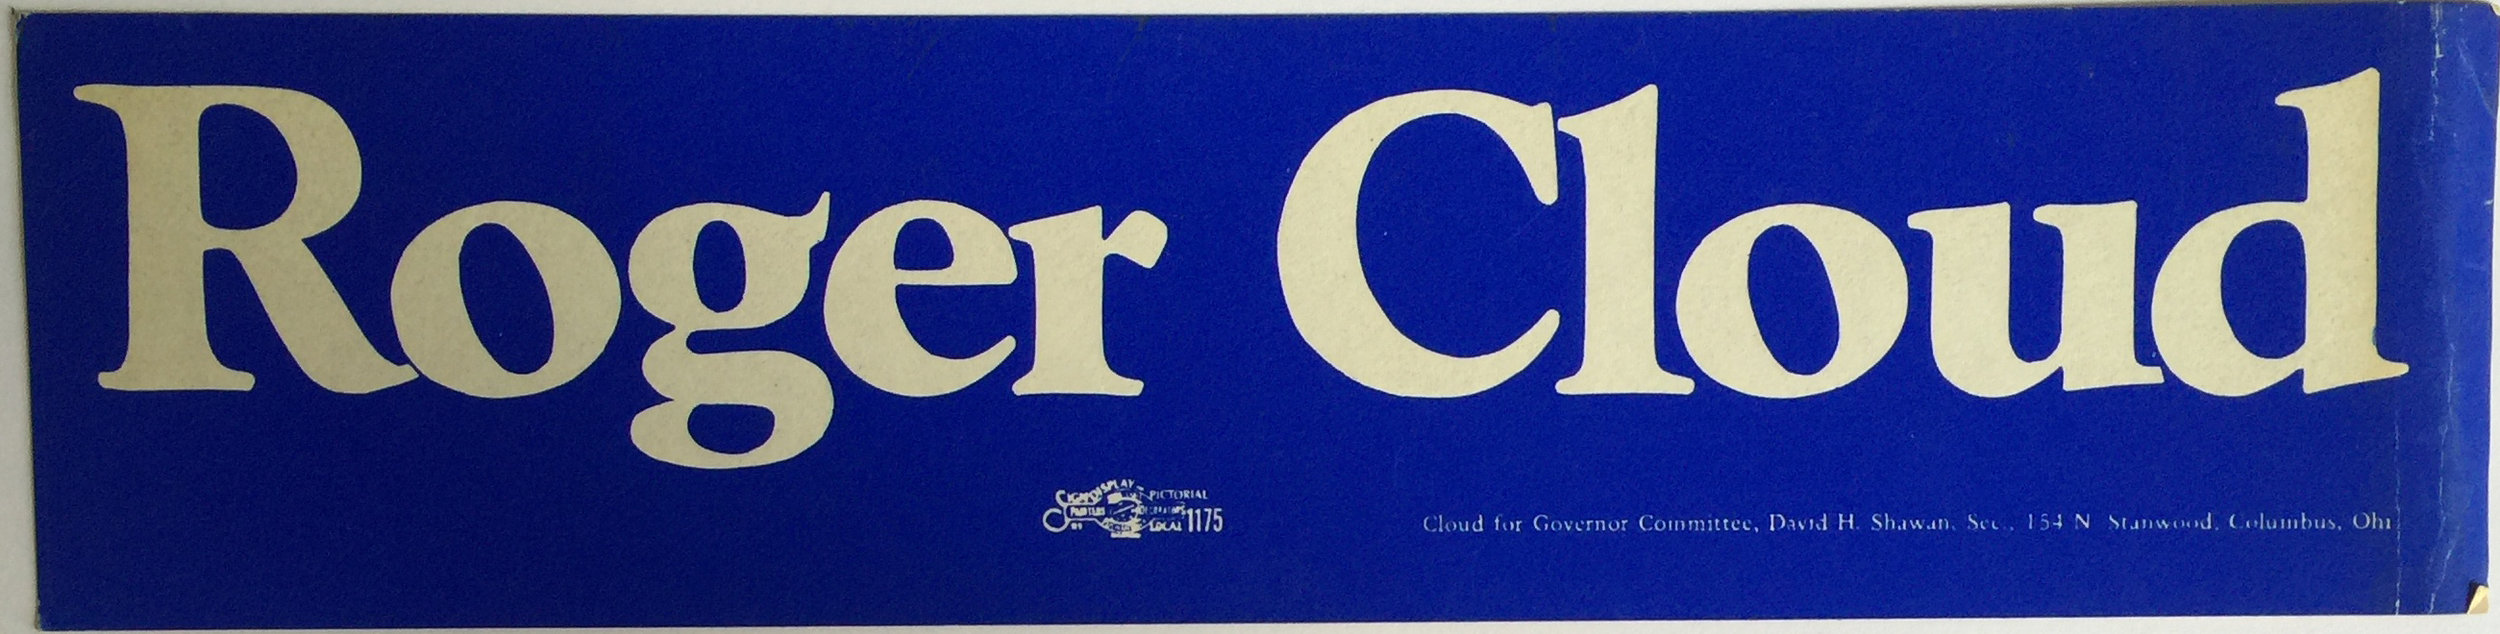 Sticker-gov1970 CLOUD 3.jpg